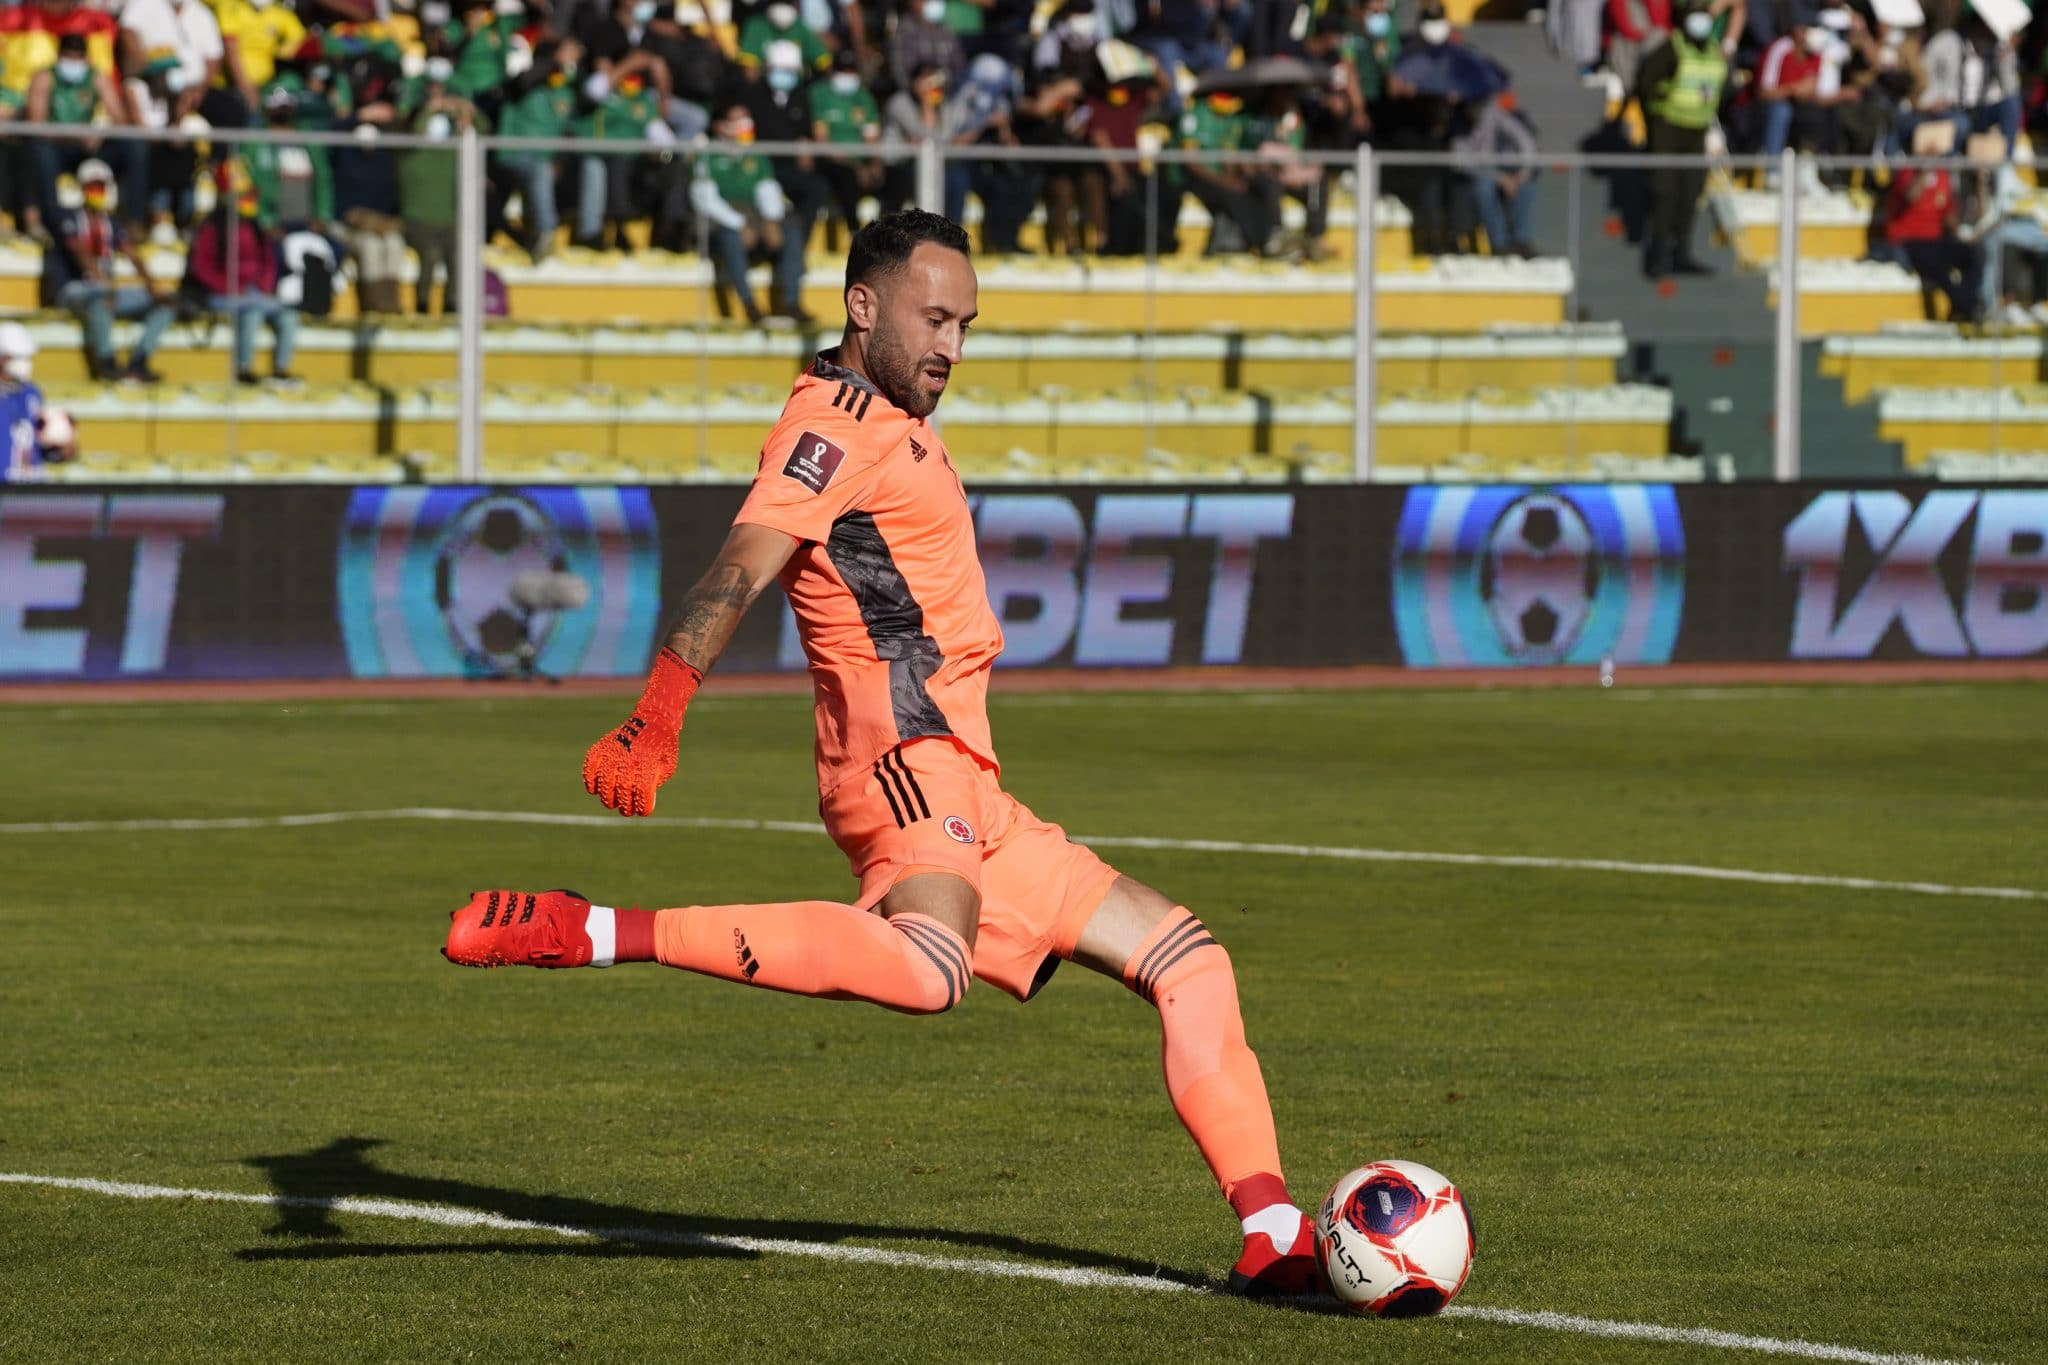 MIRAFLORES, BOLIVIA - SEPTEMBER 02: David Ospina of Colombia kicks the ball during a match between Bolivia and Colombia as part of South American Qualifiers for Qatar 2022 at Estadio Hernando Siles on September 02, 2021 in Miraflores, Bolivia. (Photo by Javier Mamani/Getty Images)